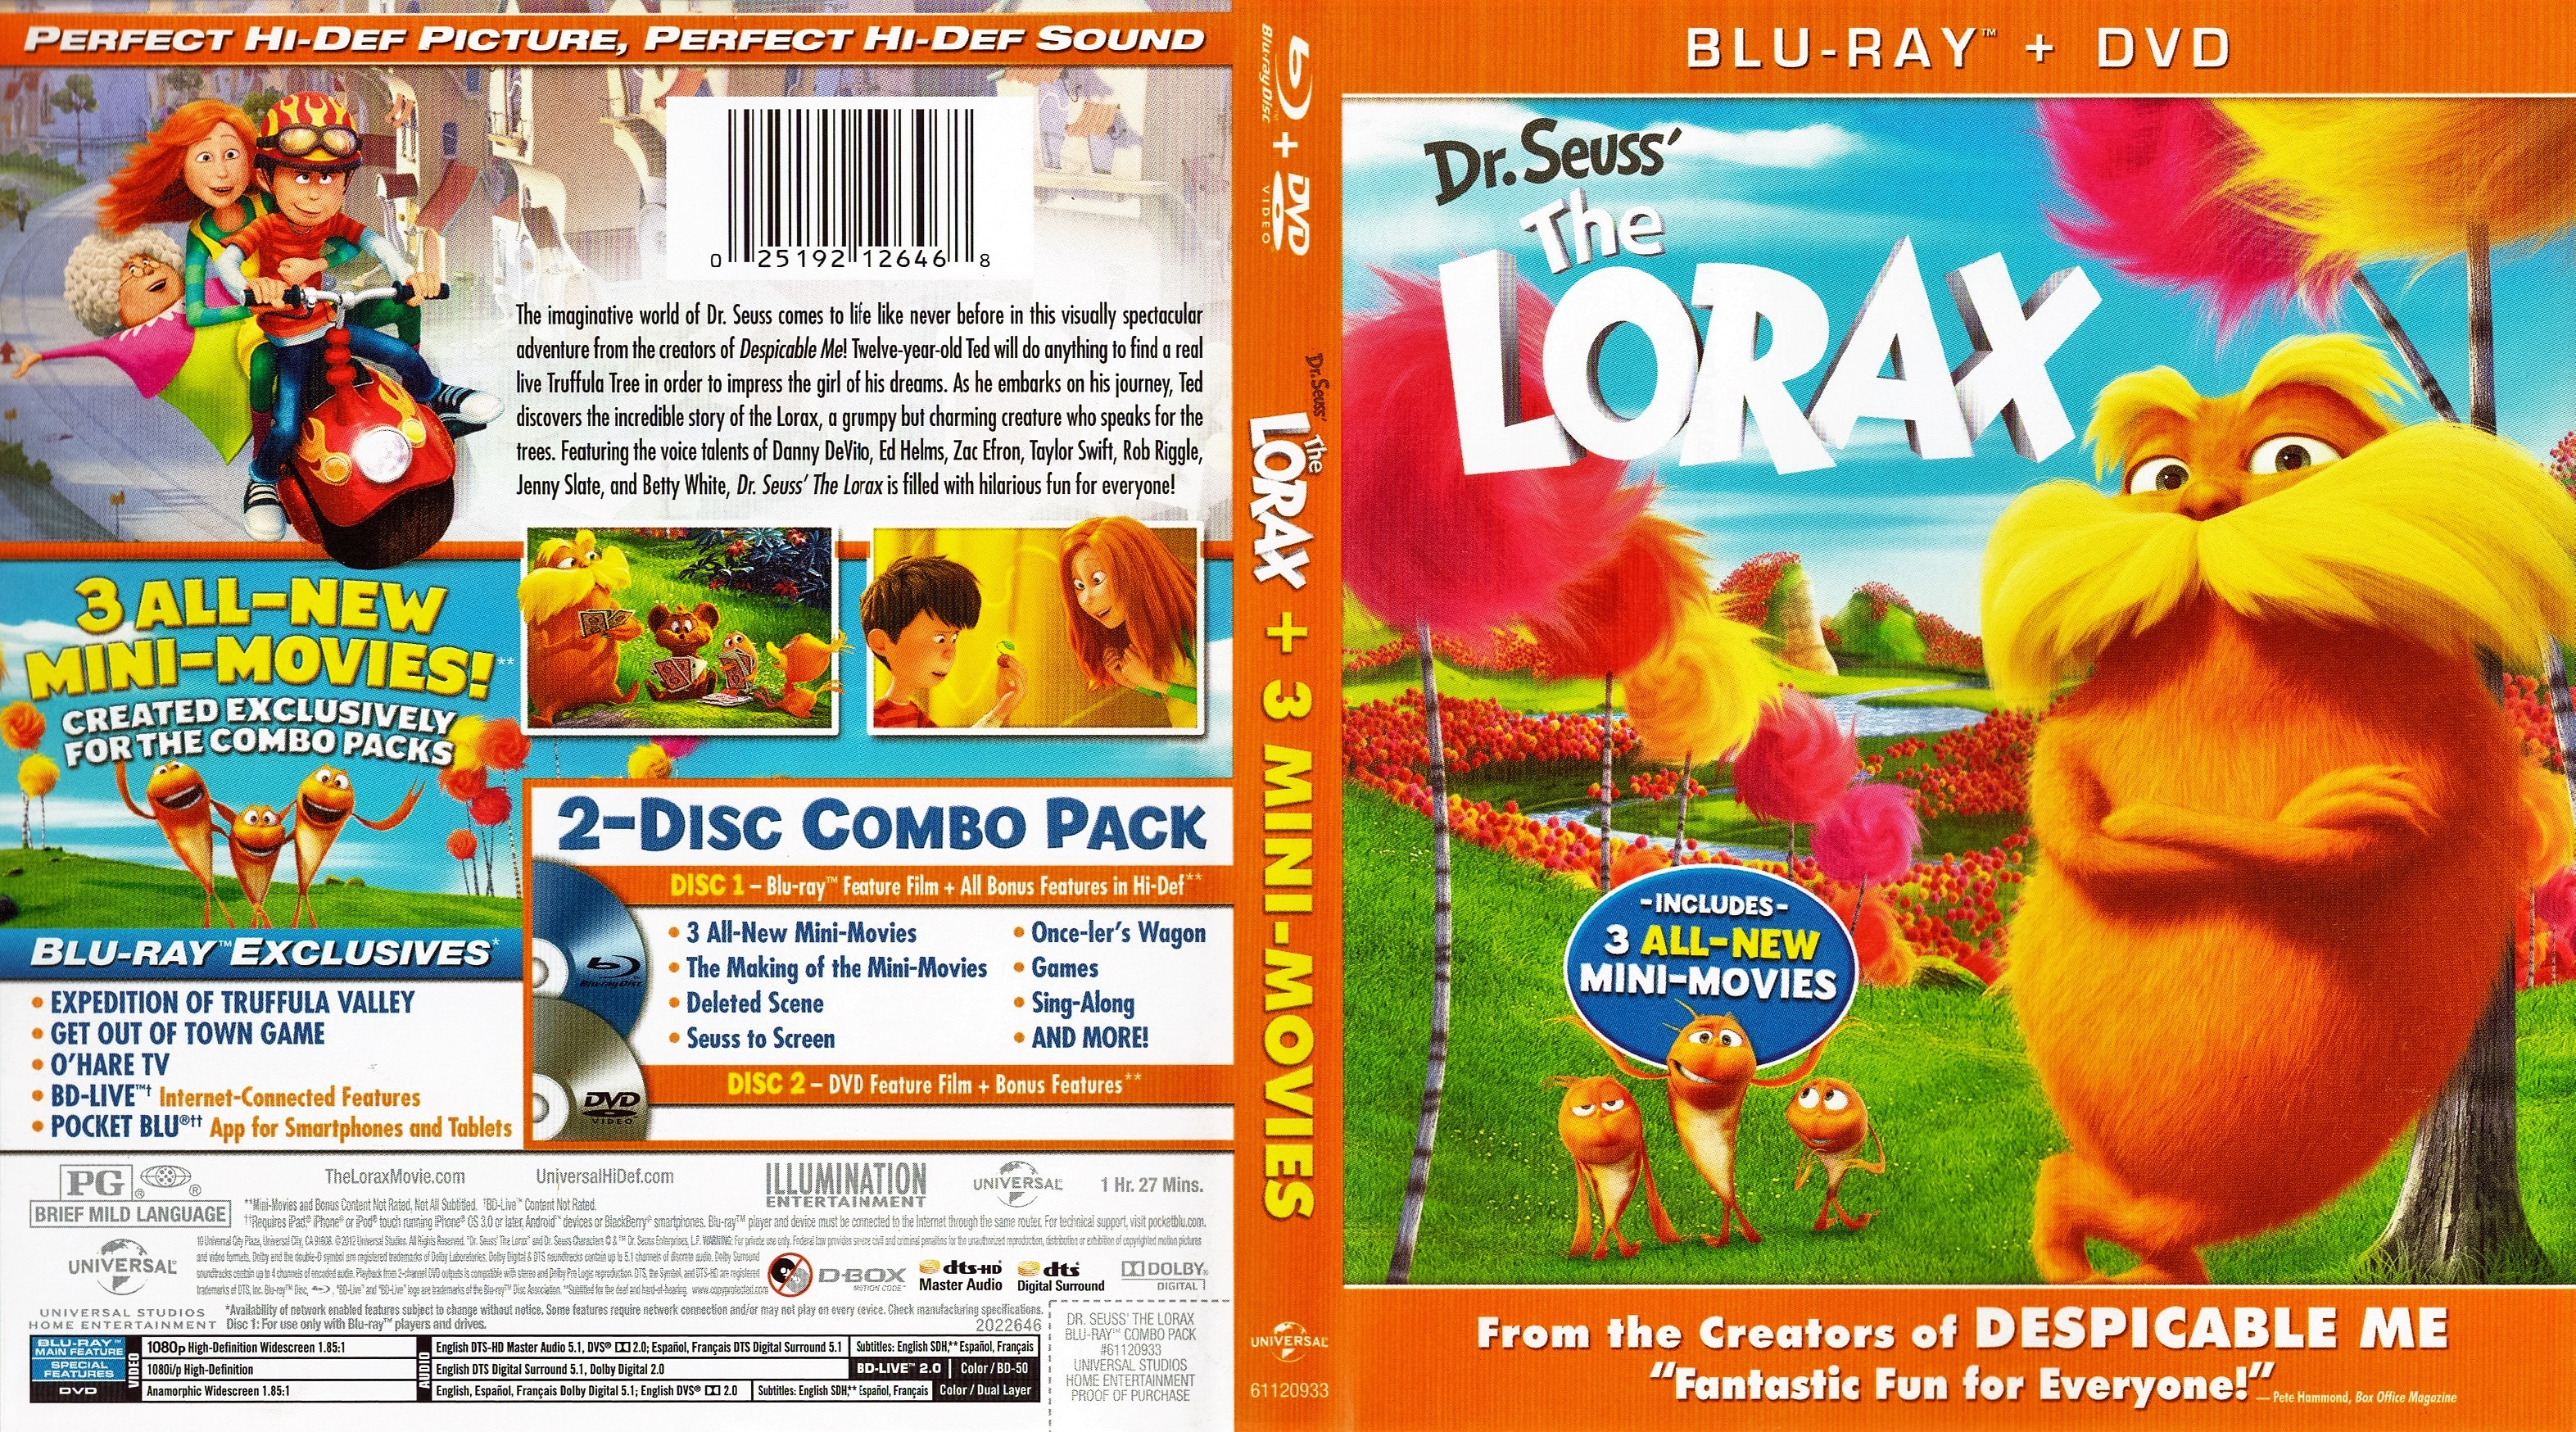 The Lorax 2012 R1 Blu Ray Cover Dvd Covers Cover Century Over 500 000 Album Art Covers For Free